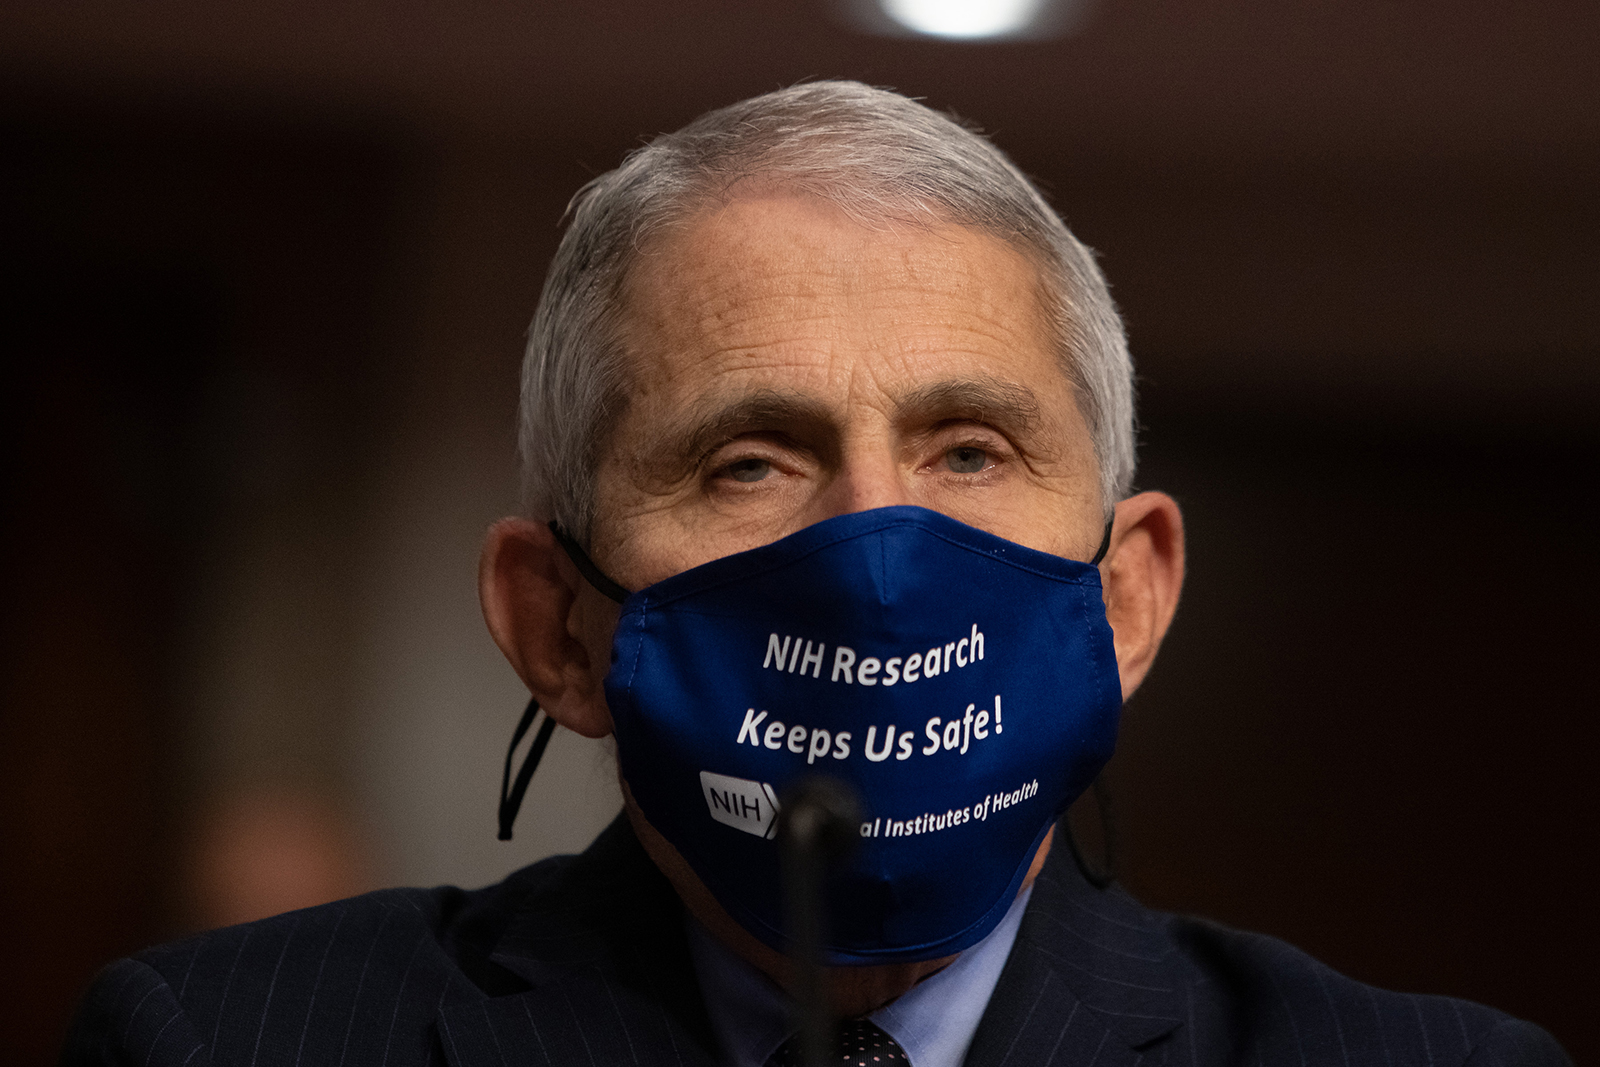 Anthony Fauci, director of National Institute of Allergy and Infectious Diseases at NIH, looks on before testifying at a Senate Health, Education, and Labor and Pensions Committee on Capitol Hill, on September 23 in Washington.